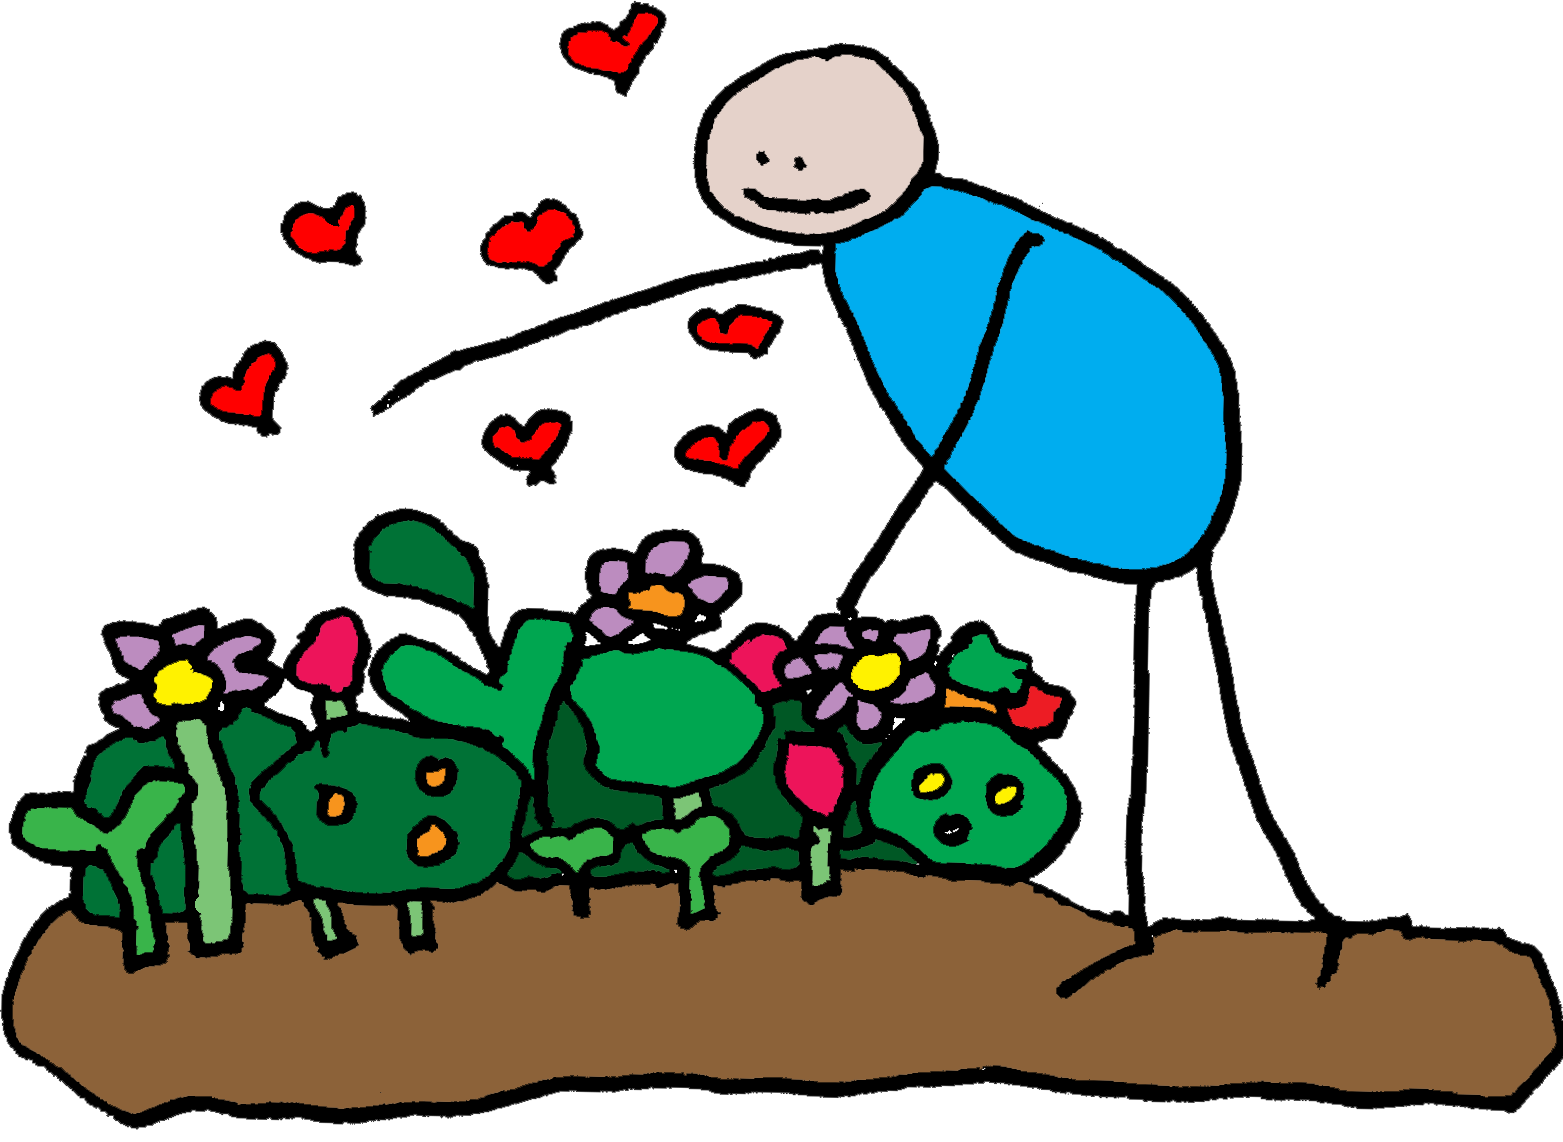 a person giving their garden love